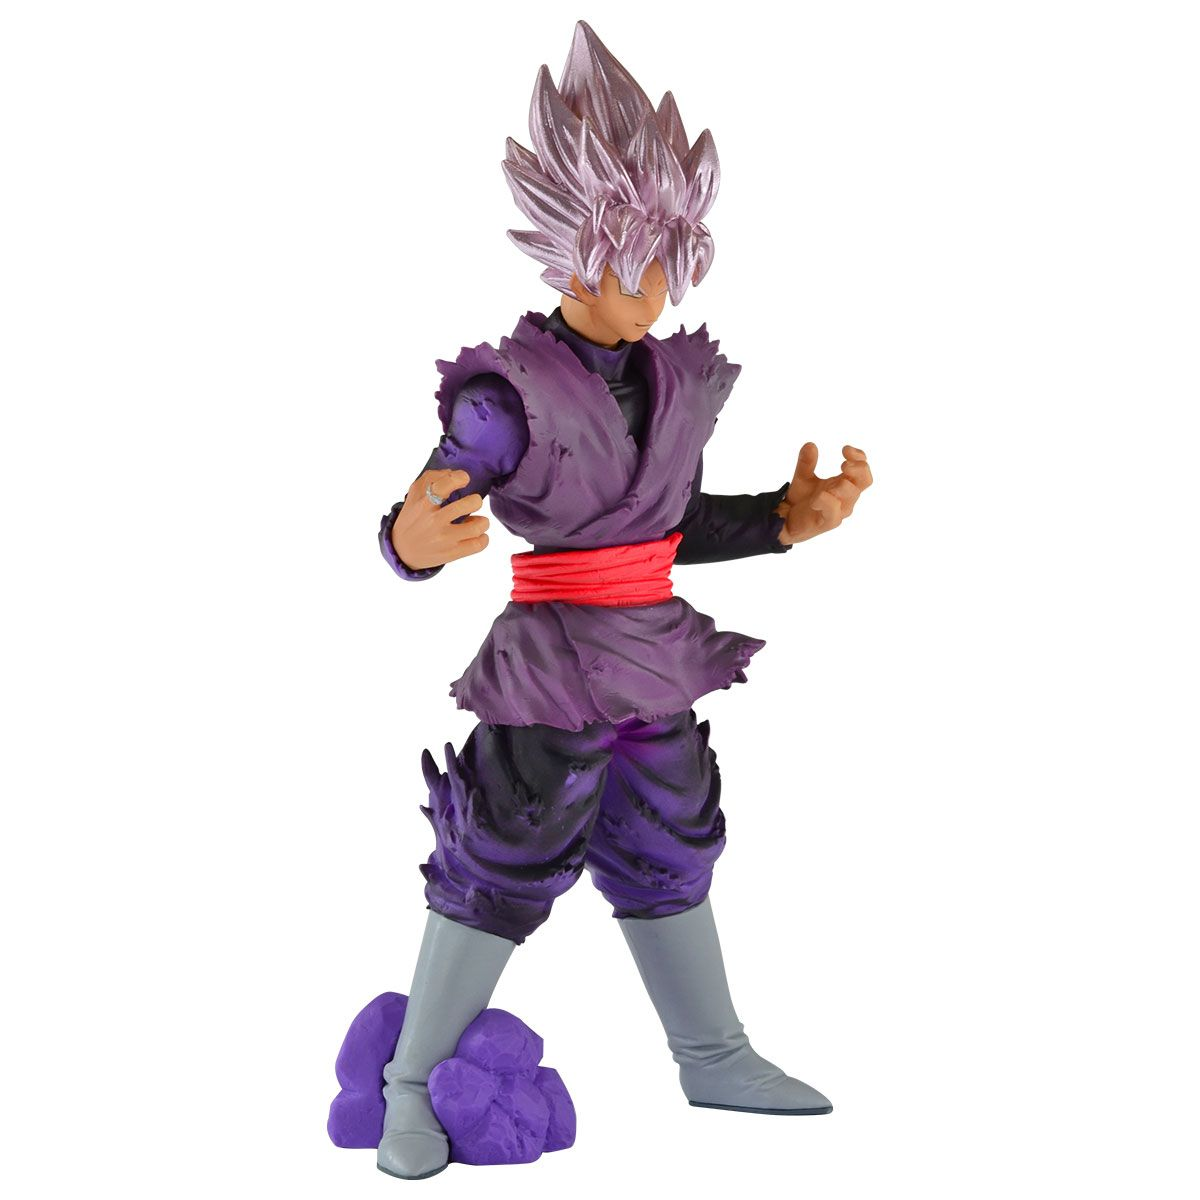 Action Figure Goku Black Rose: Dragon Ball Super (Boneco Colecionável) - Banpresto